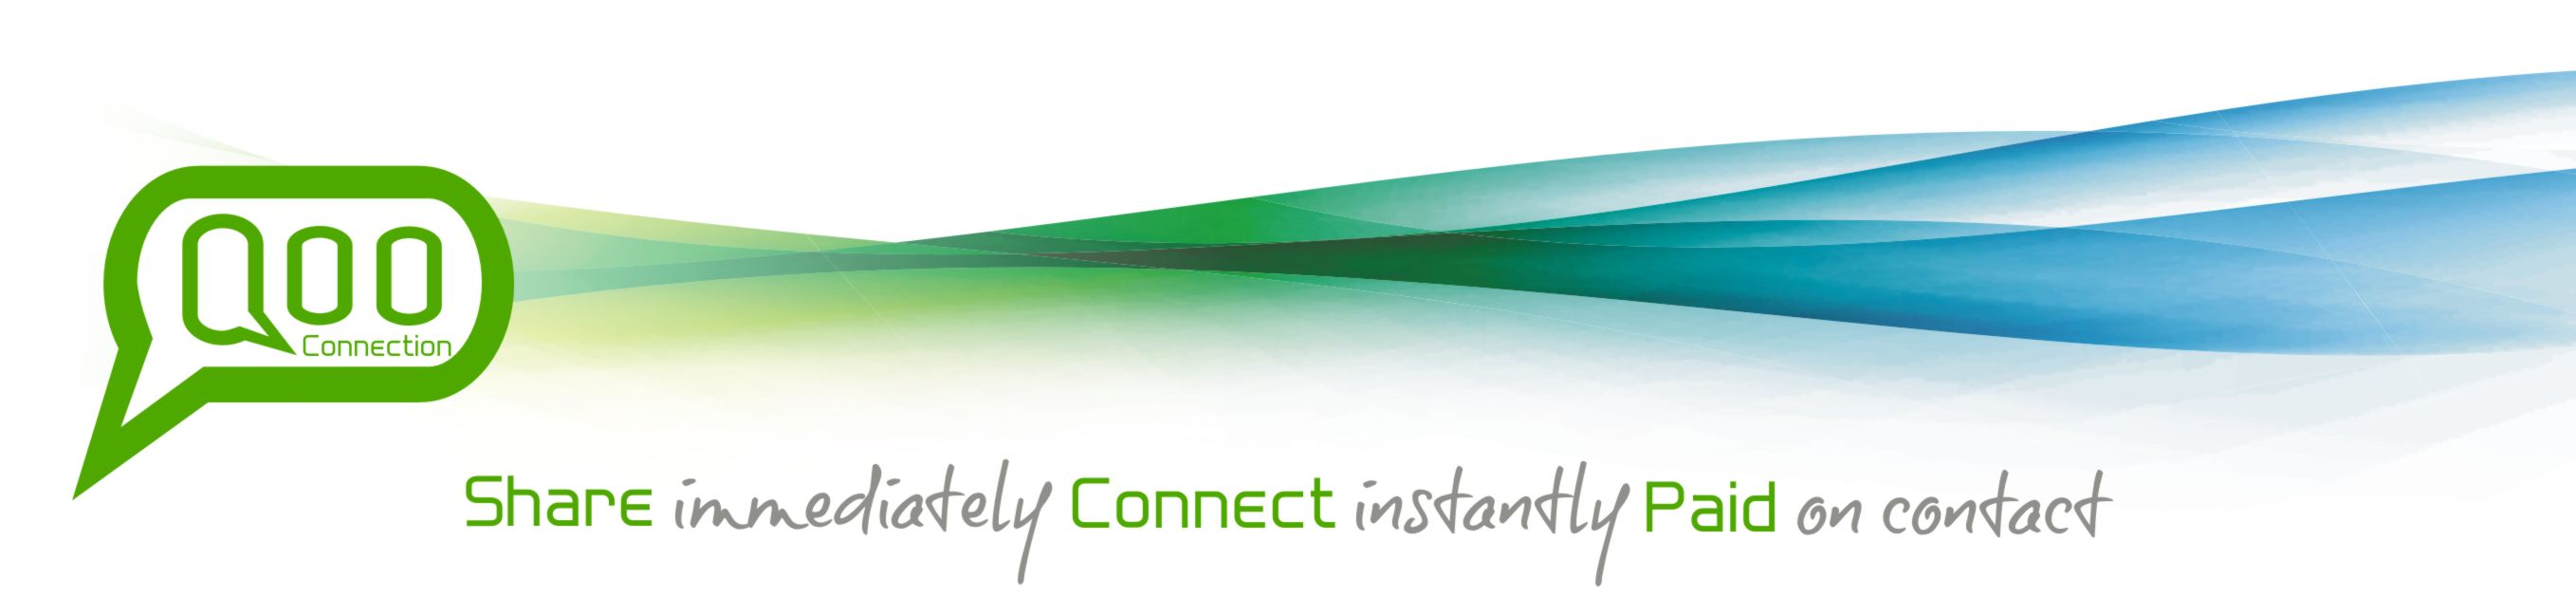 Qoo Connection logo